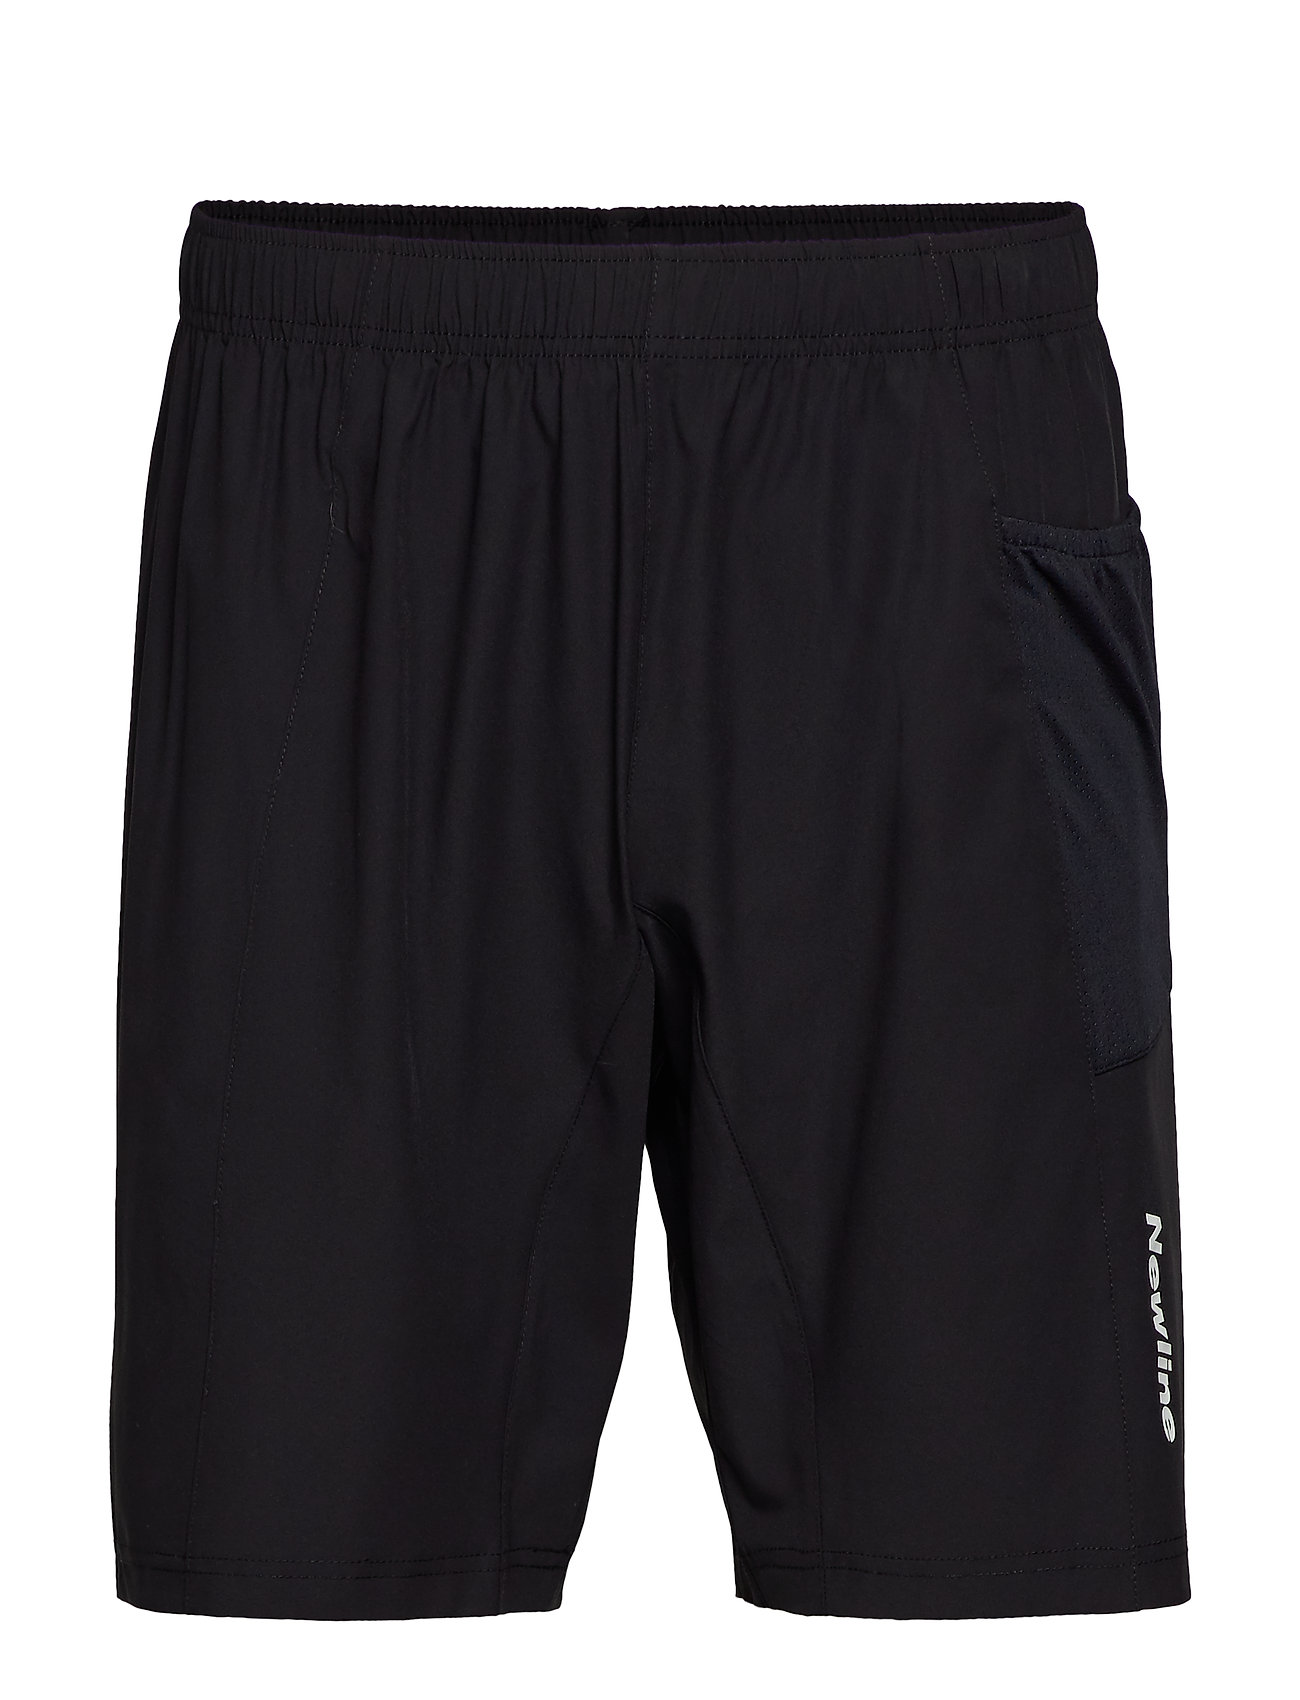 Newline Stretch Shorts - BLACK